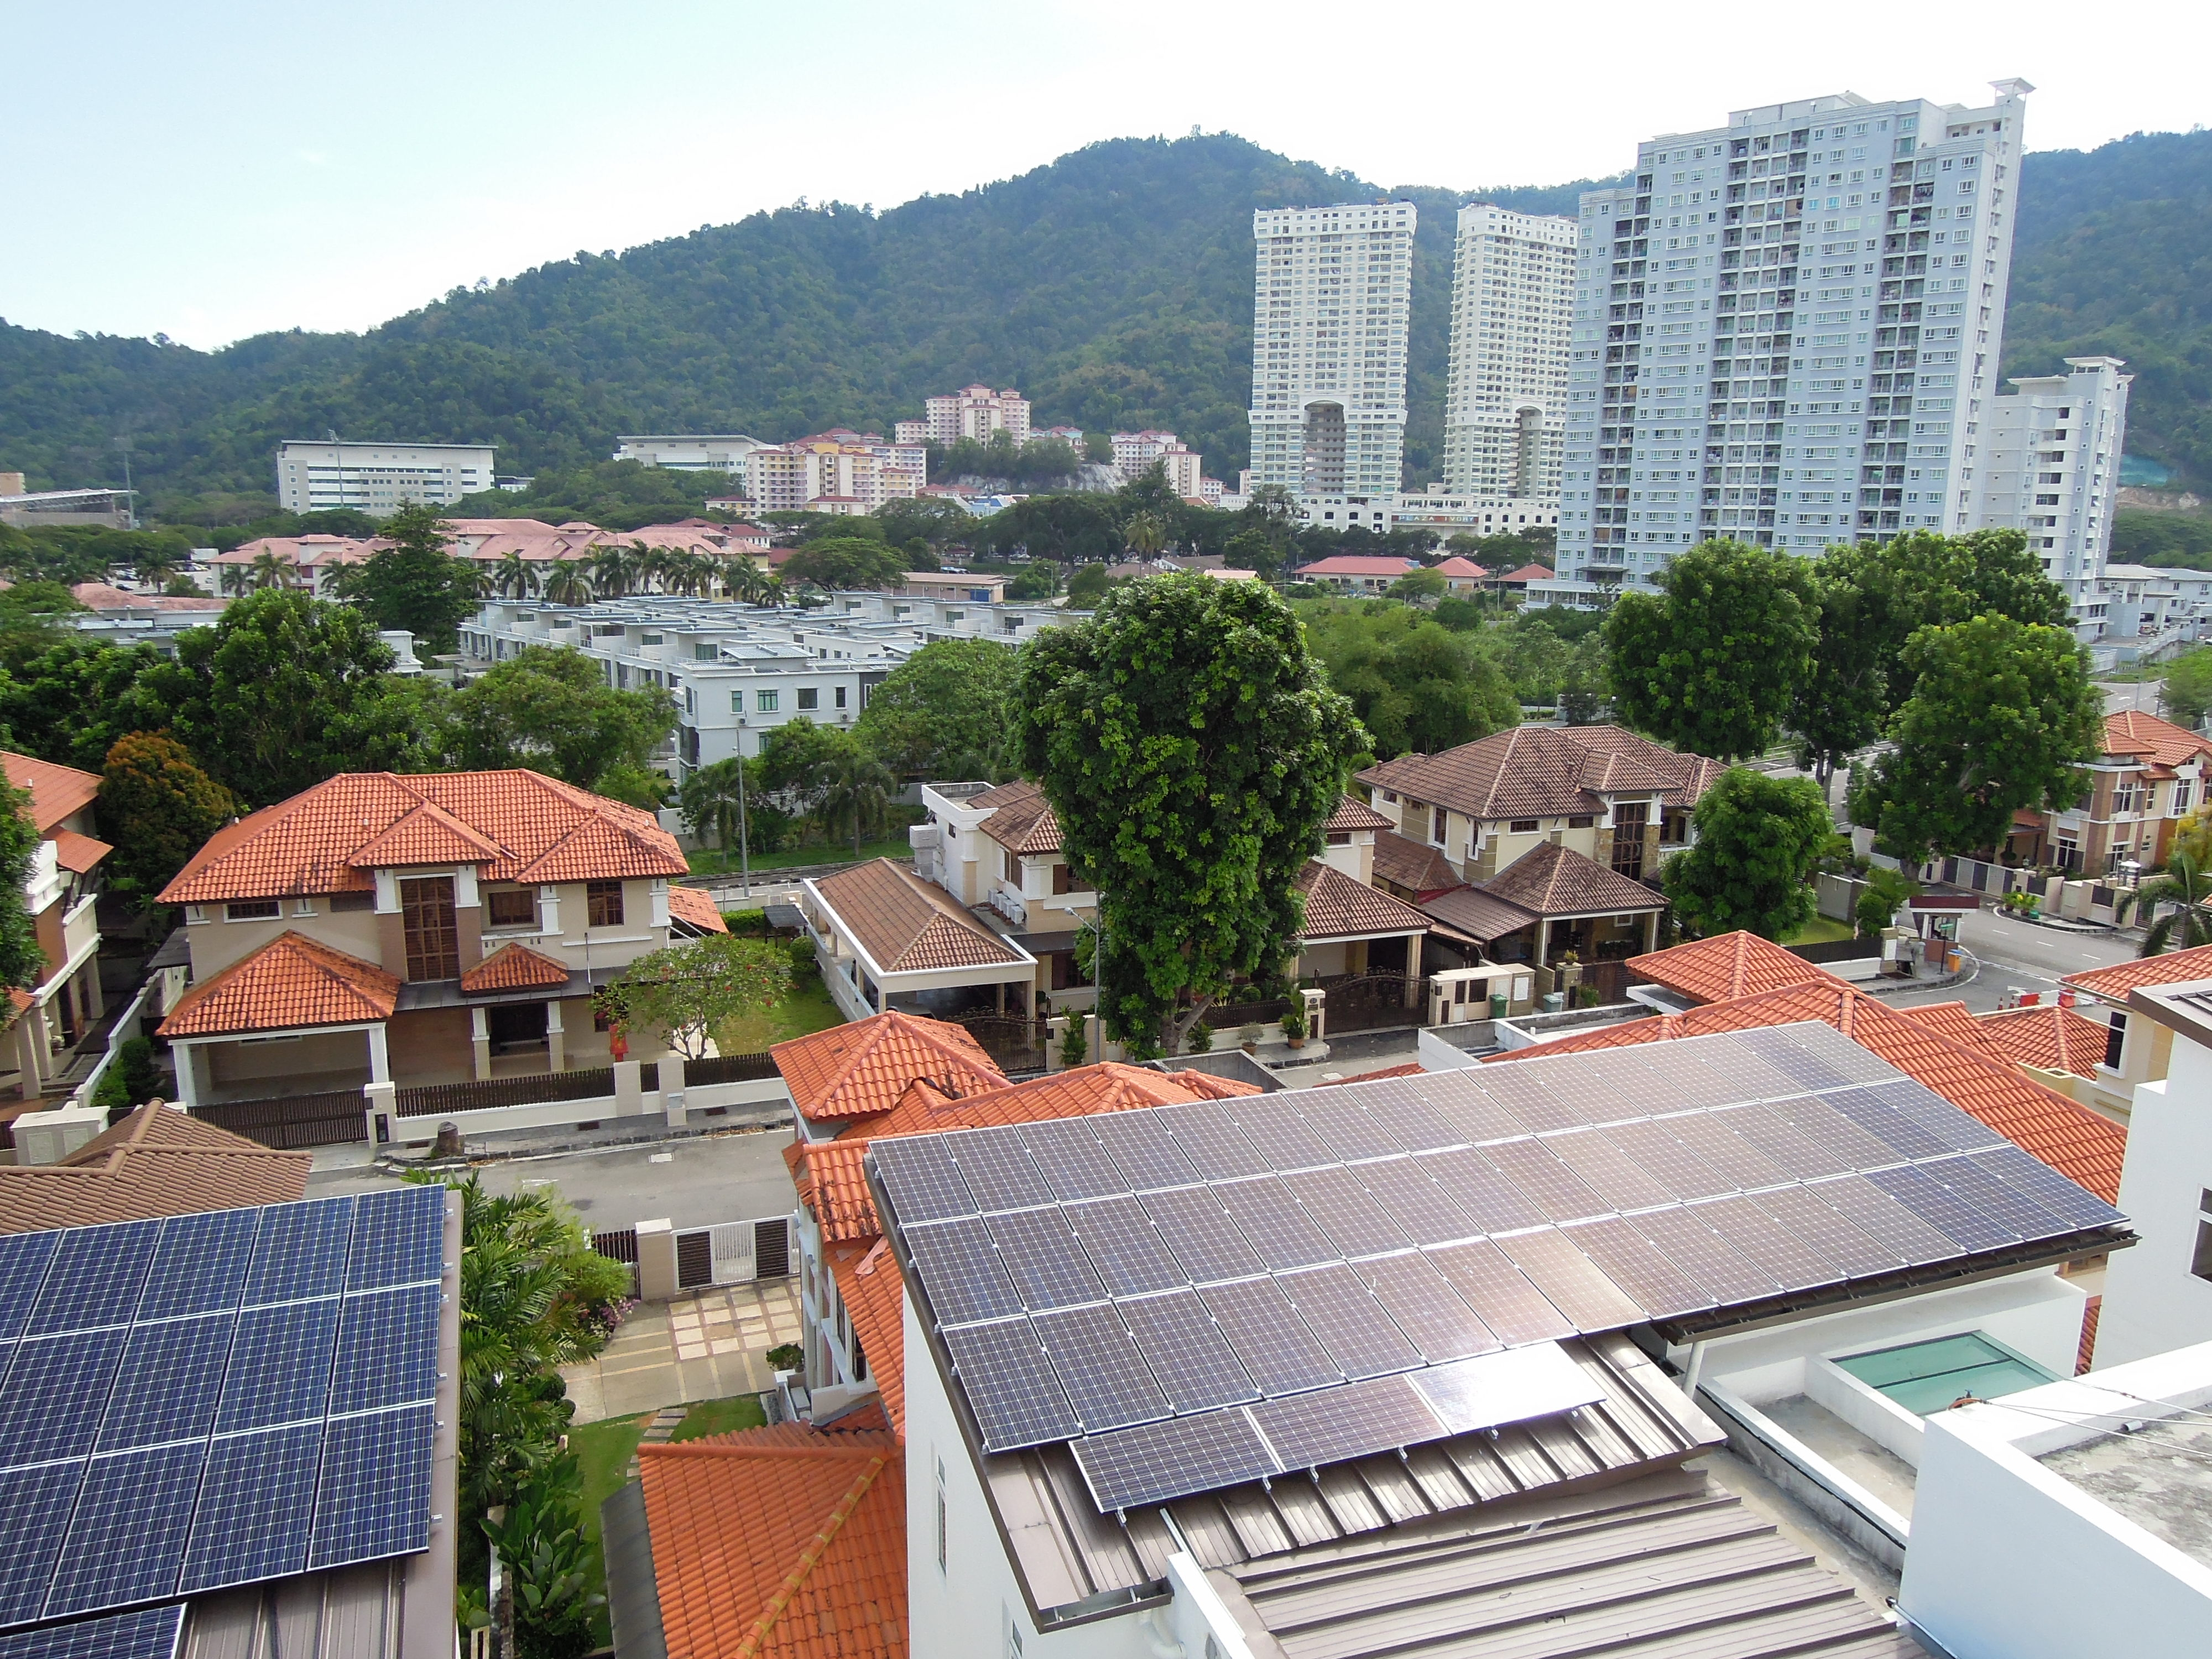 Solar Roof Residential Minden Height Penang 12kW